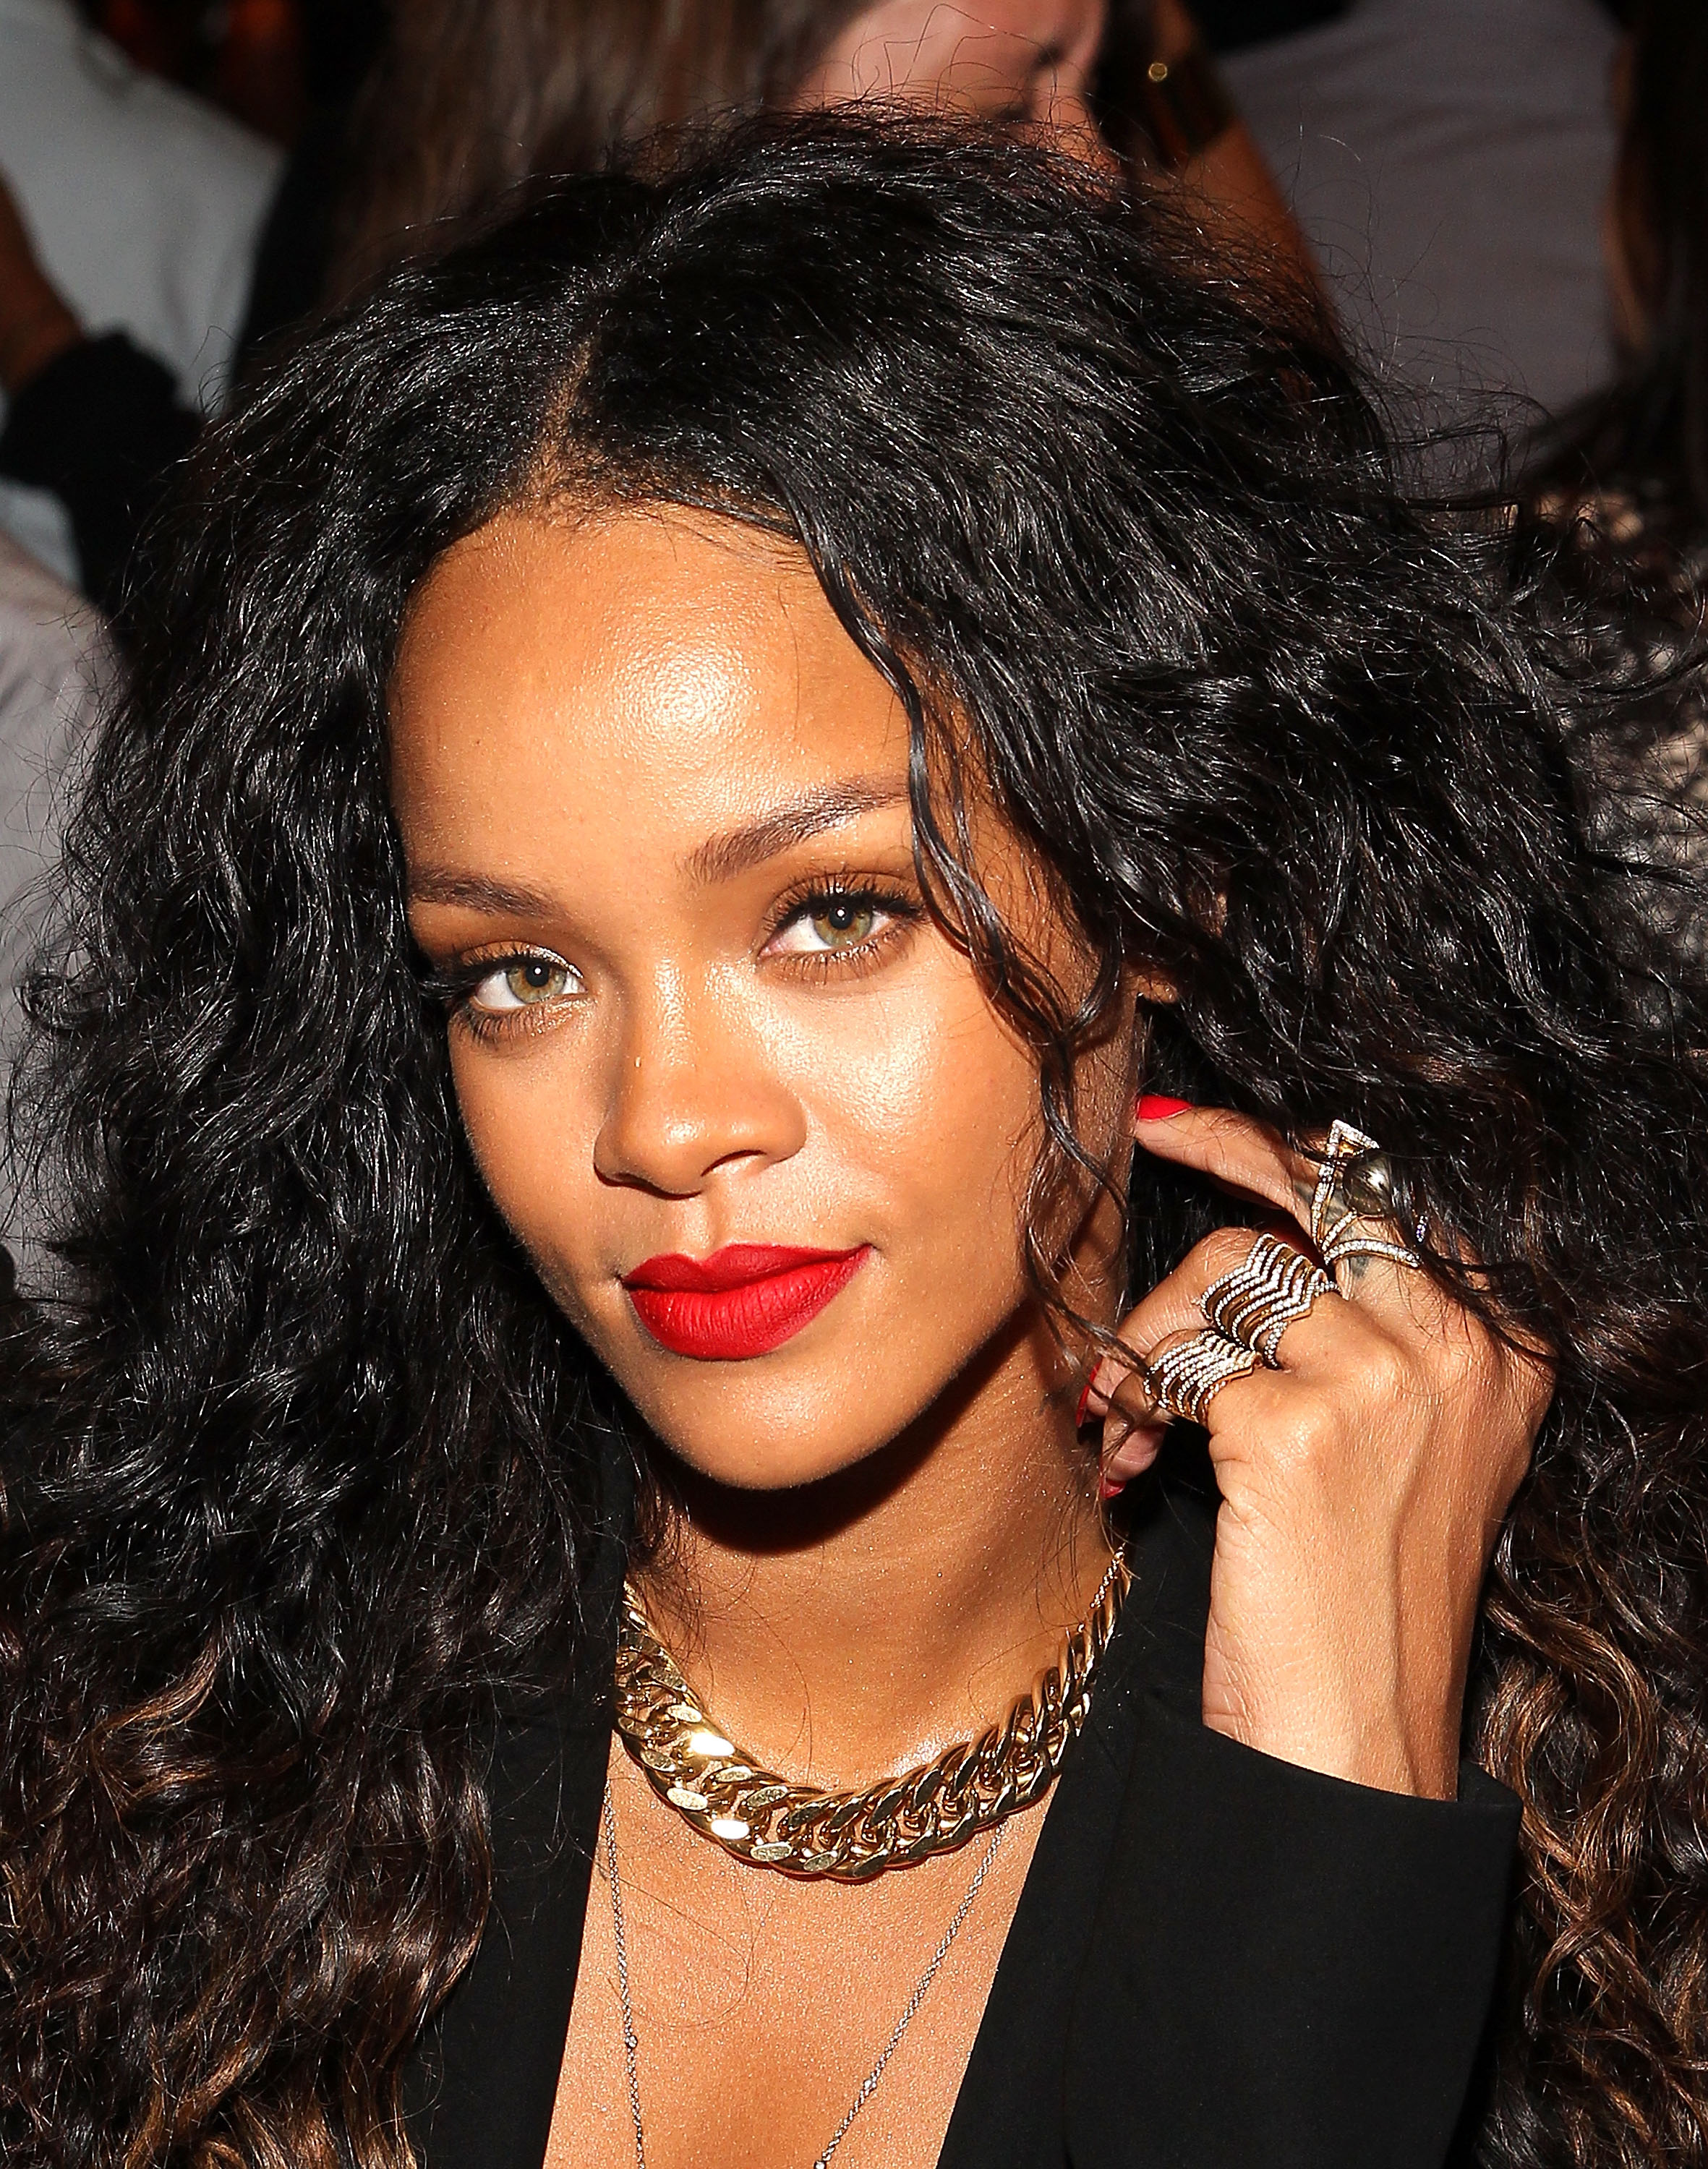 Rihanna attends the Altuzarra fashion show during Mercedes-Benz Fashion Week Spring 2015 at Spring Studios on September 6, 2014 in New York City.